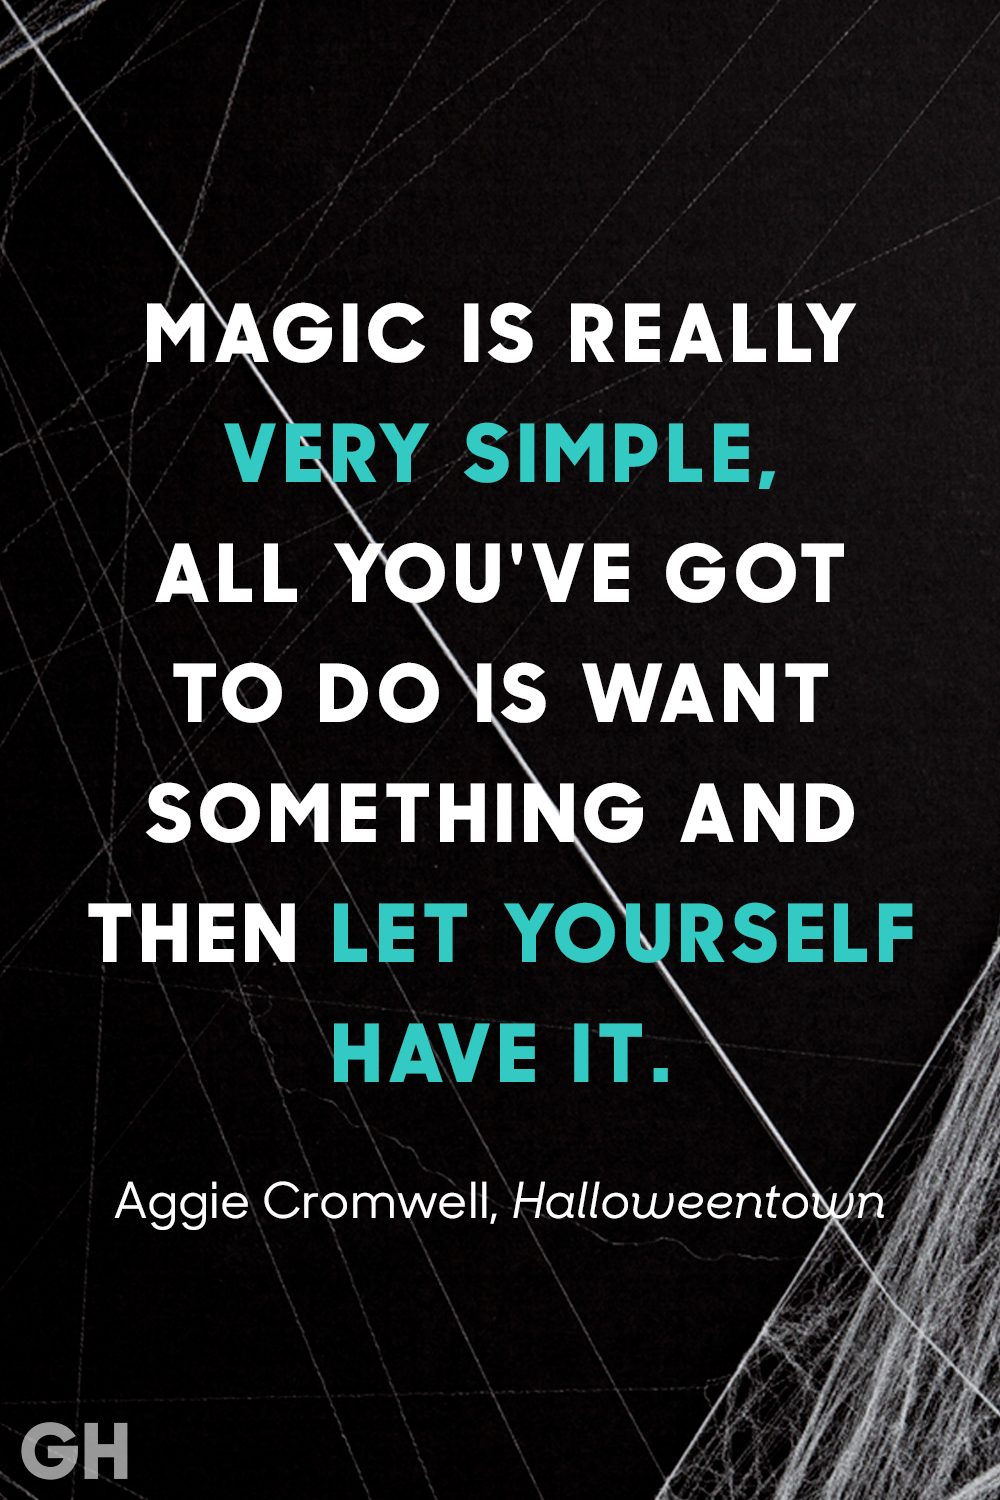 Aggie Cromwell, Halloweentown halloween quotes